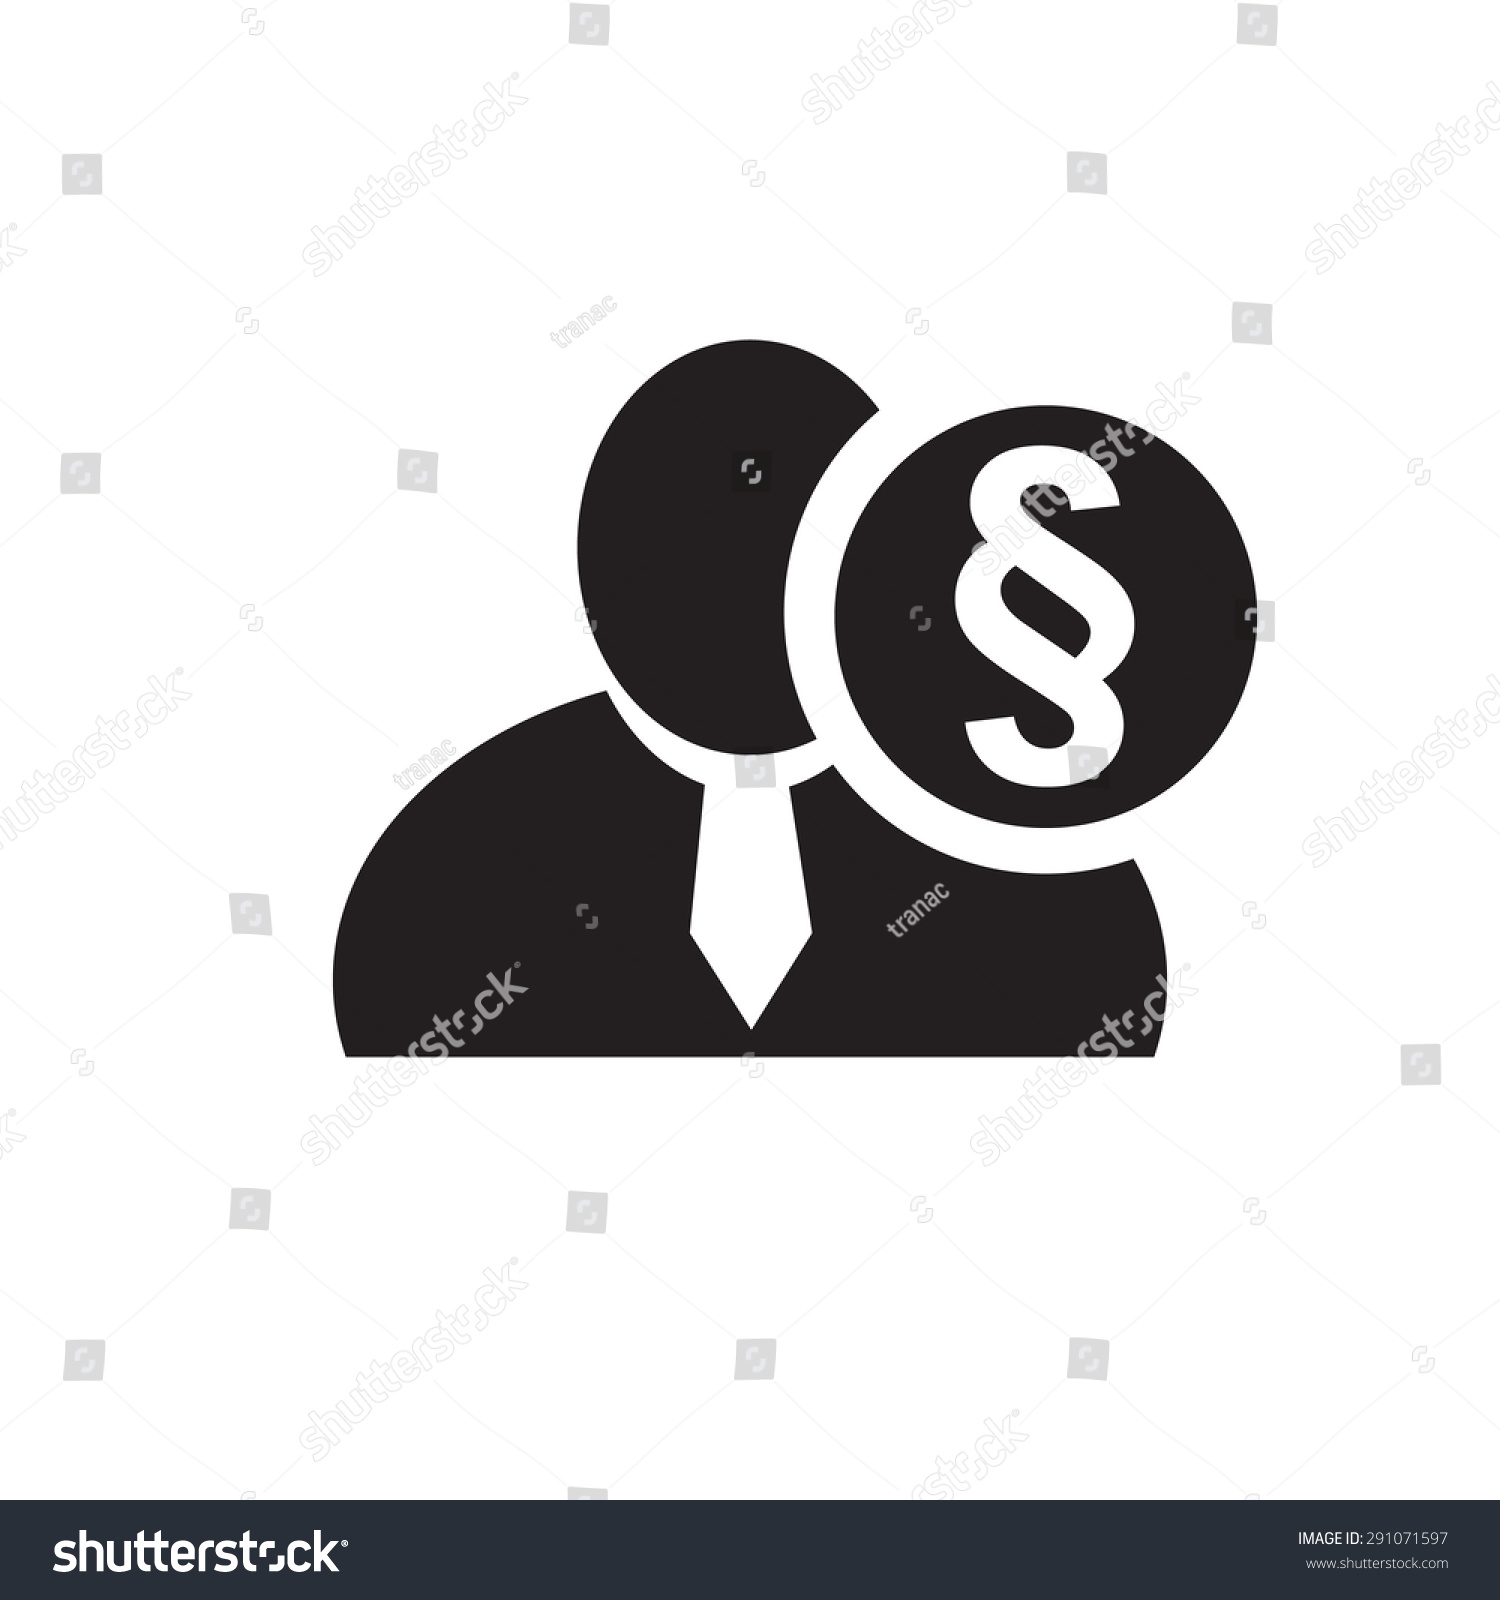 Black man silhouette icon section paragraph stock vector 291071597 black man silhouette icon with section or paragraph sign in an information circle flat design buycottarizona Choice Image